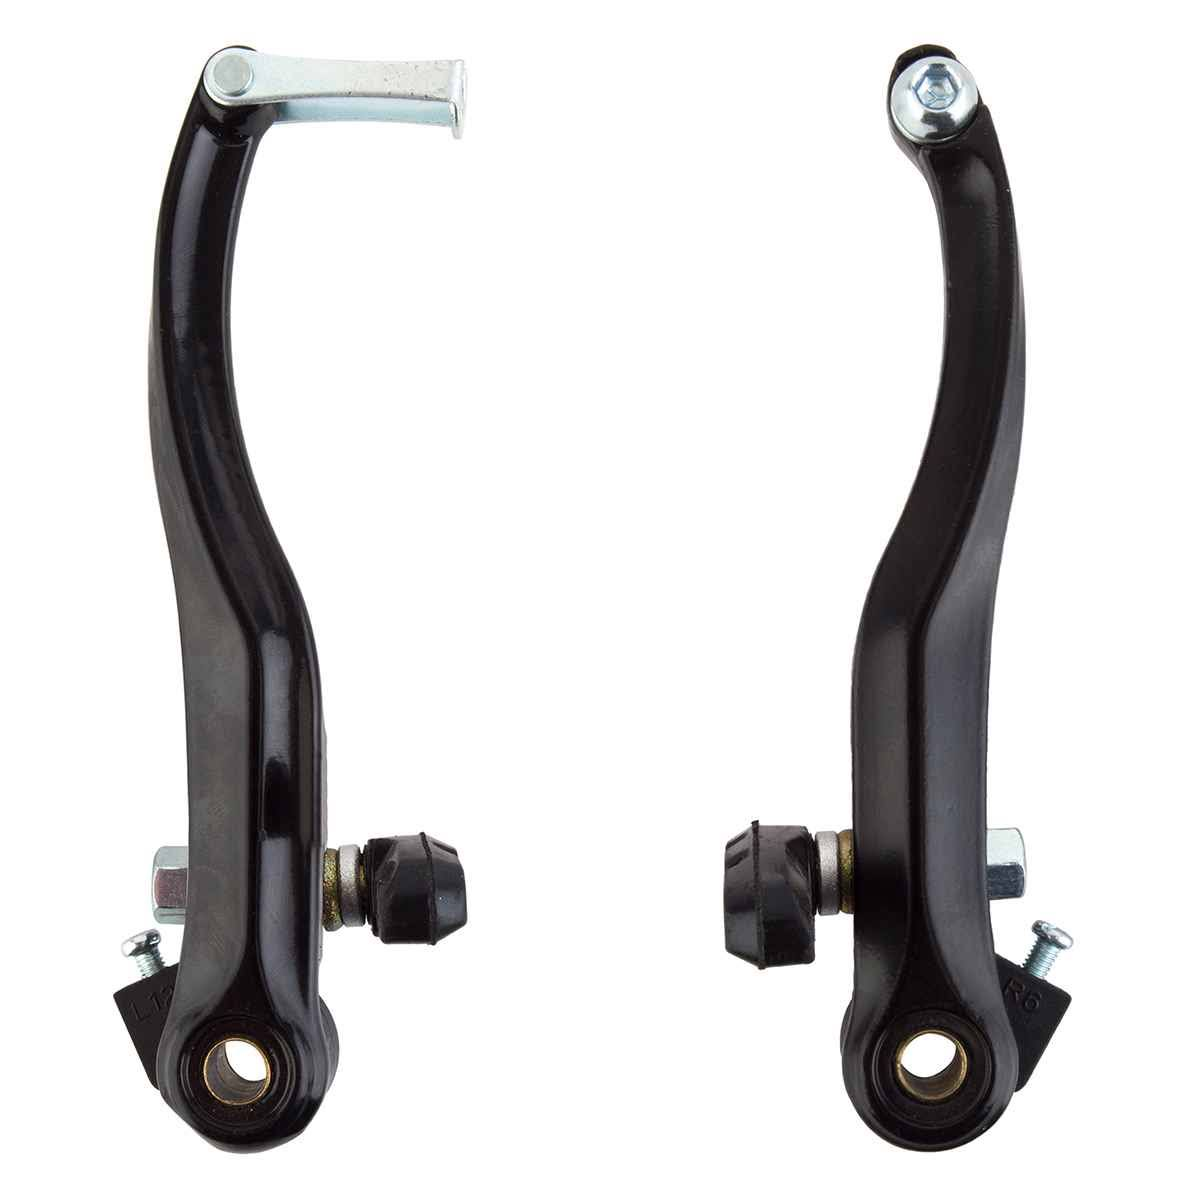 Sunlite Classic Linear Pull Brakes - Single, Black